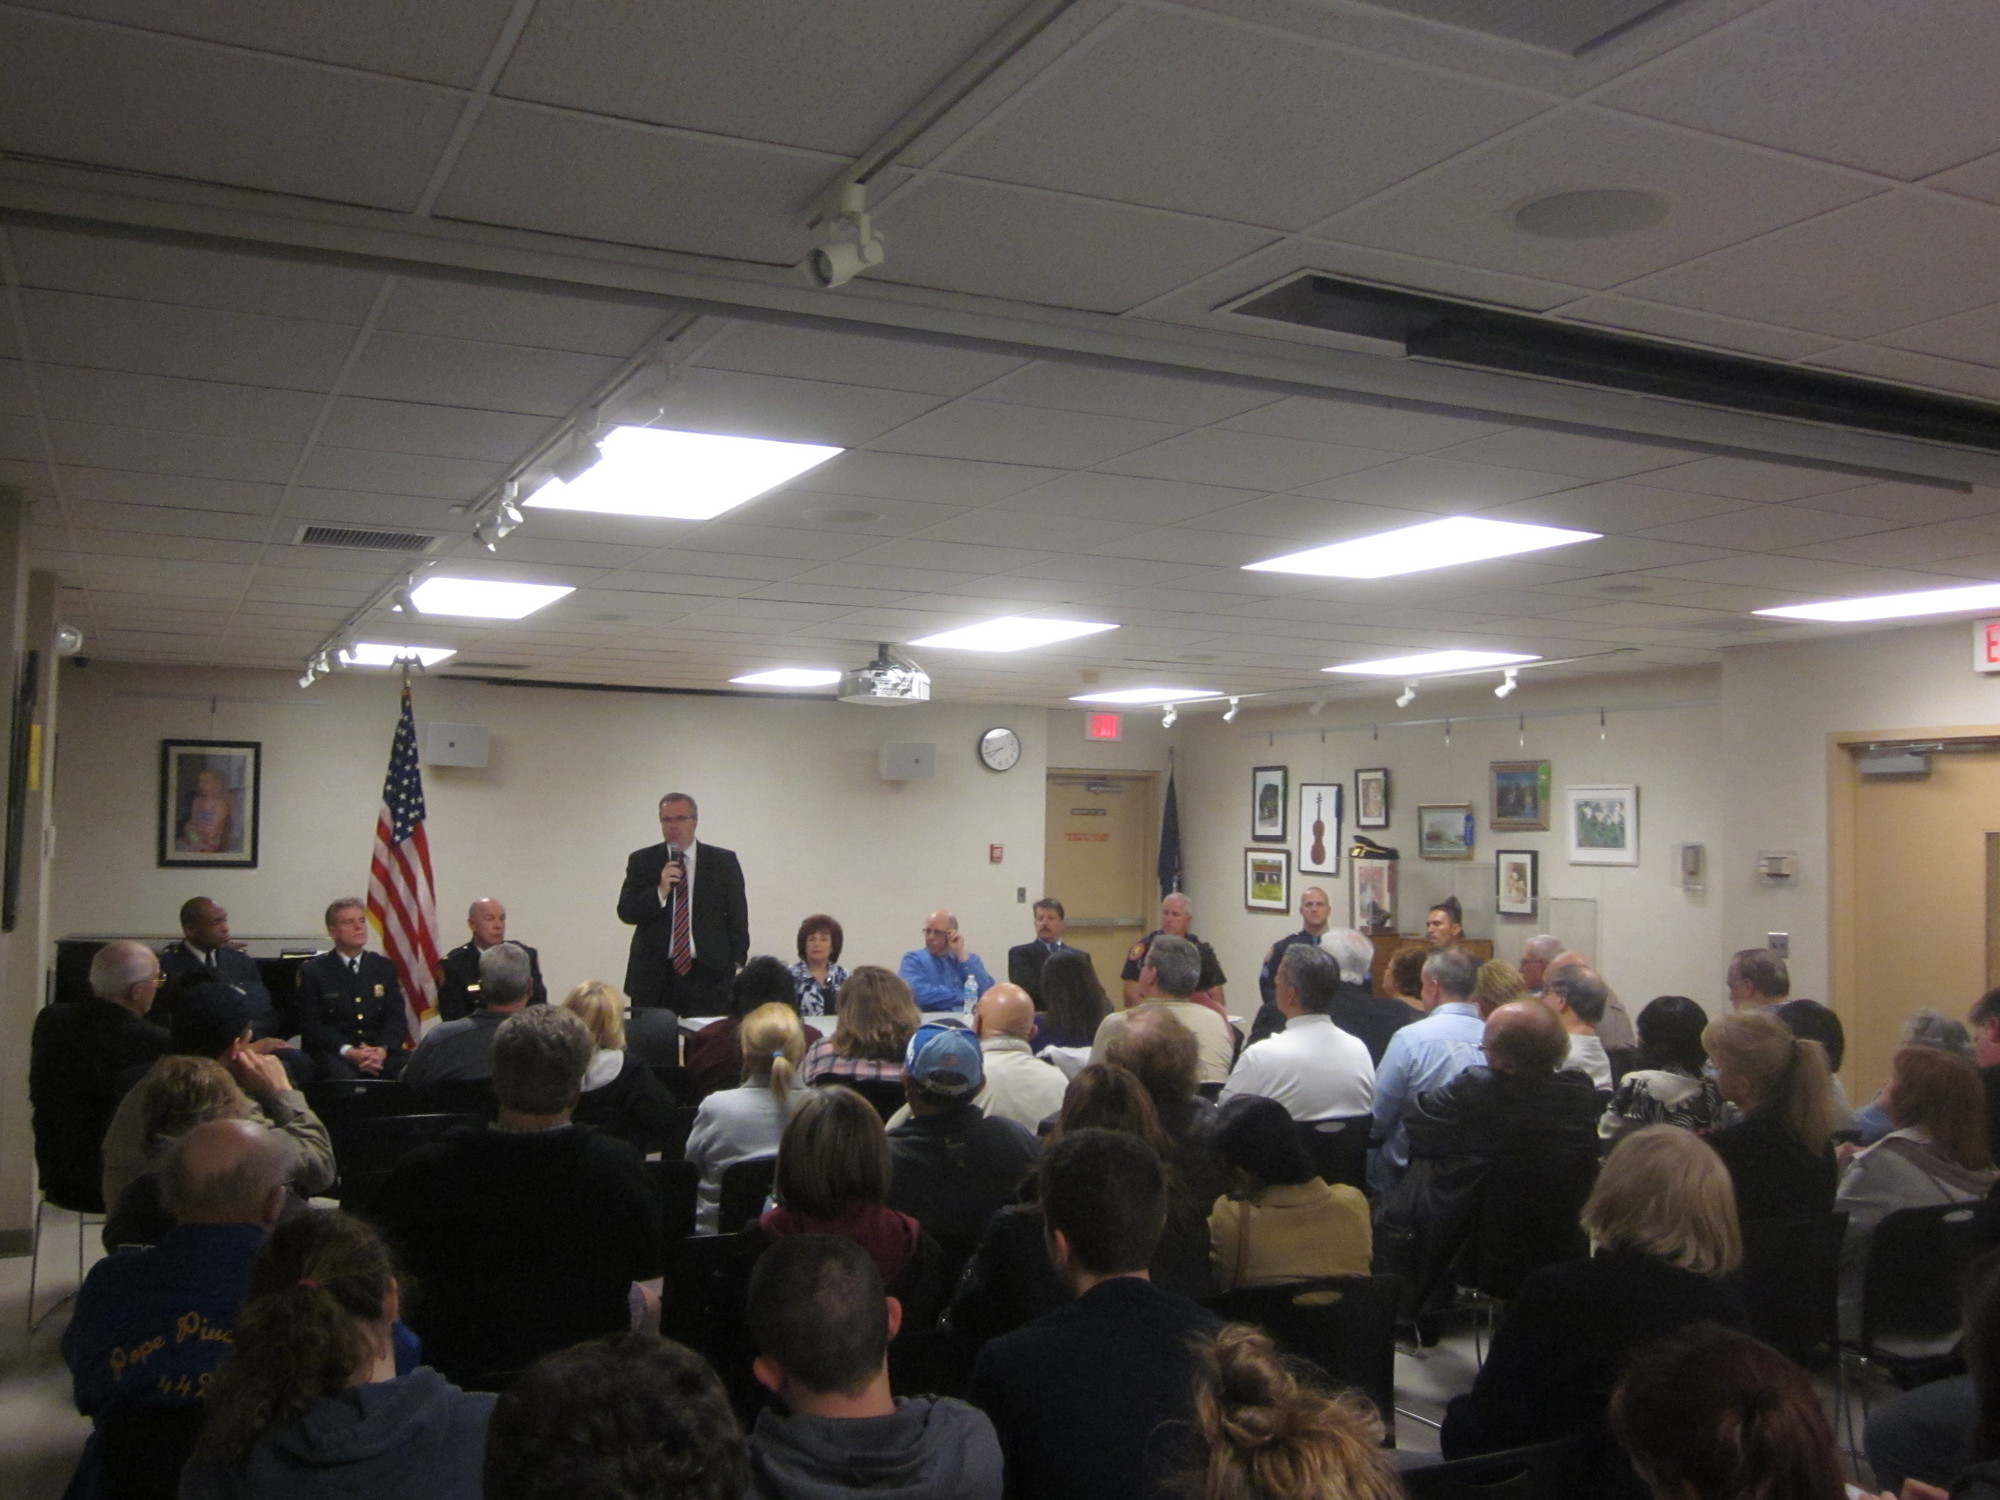 Nassau County Police First Deputy Commissioner Thomas Krumpter addressed a crowd of more than 70 during a recent Public Safety Community Forum at the East Meadow Public Library.